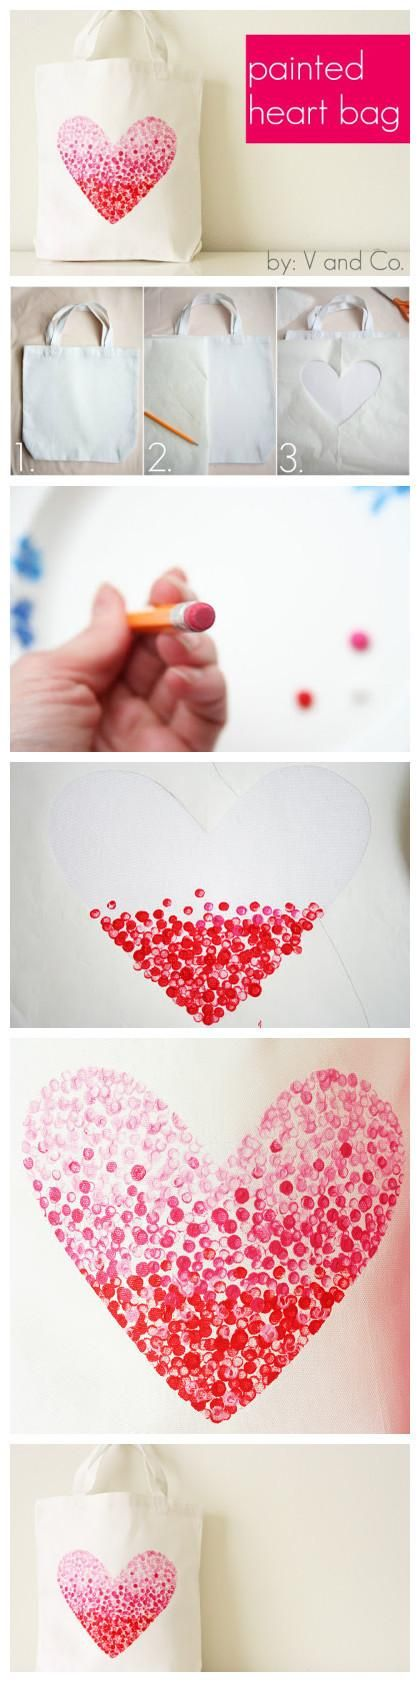 This DIY heart gift bag looks so fun to make! #heart #valentine's day